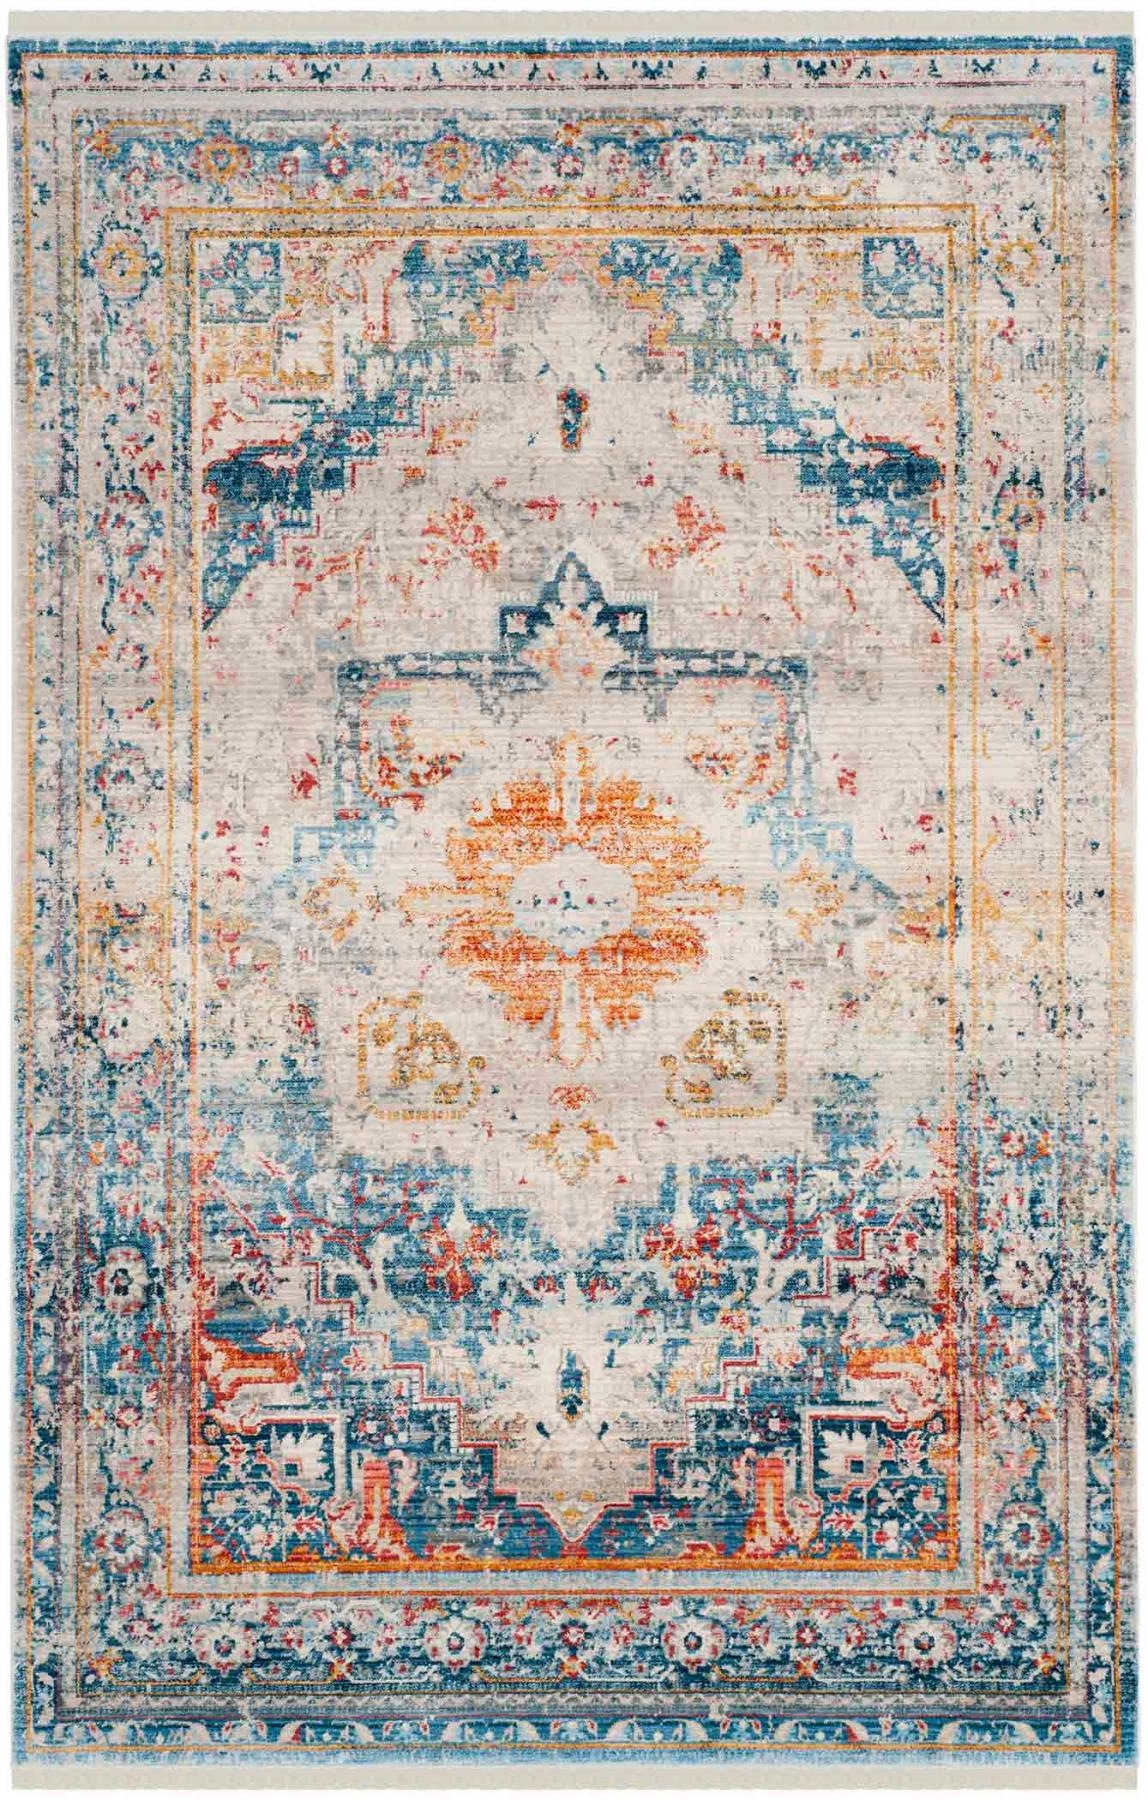 Vintage Persian Rugs Trending New Area Rug Safavieh For Blue Persian Rugs (Image 15 of 15)